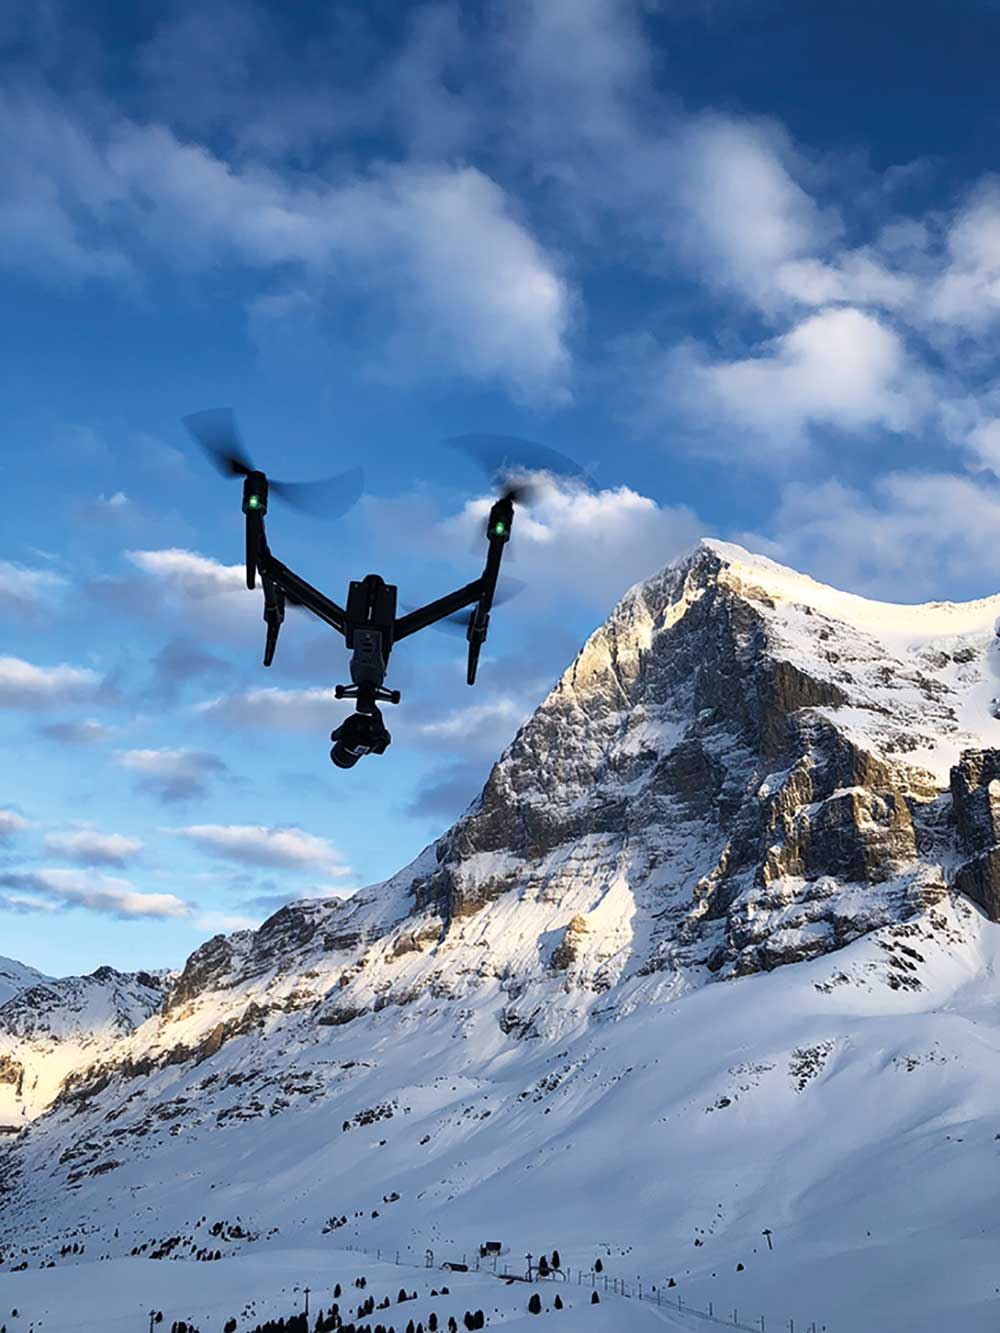 Helicopters have the edge on drones for fast longer focal length work but the new DJI X7 drone can replicate that